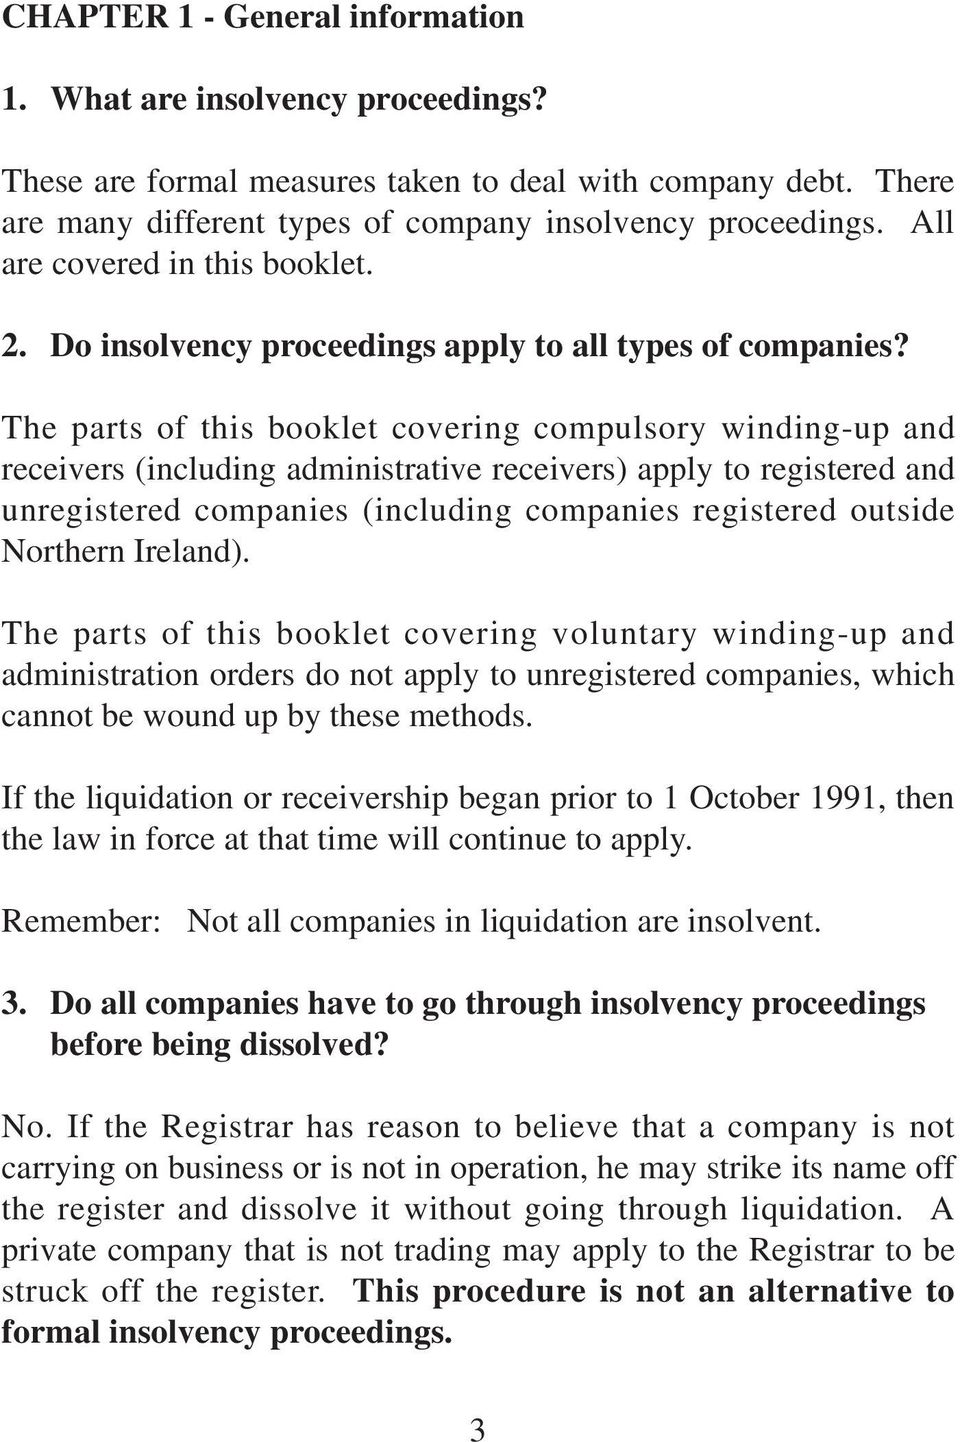 The parts of this booklet covering compulsory winding-up and receivers (including administrative receivers) apply to registered and unregistered companies (including companies registered outside